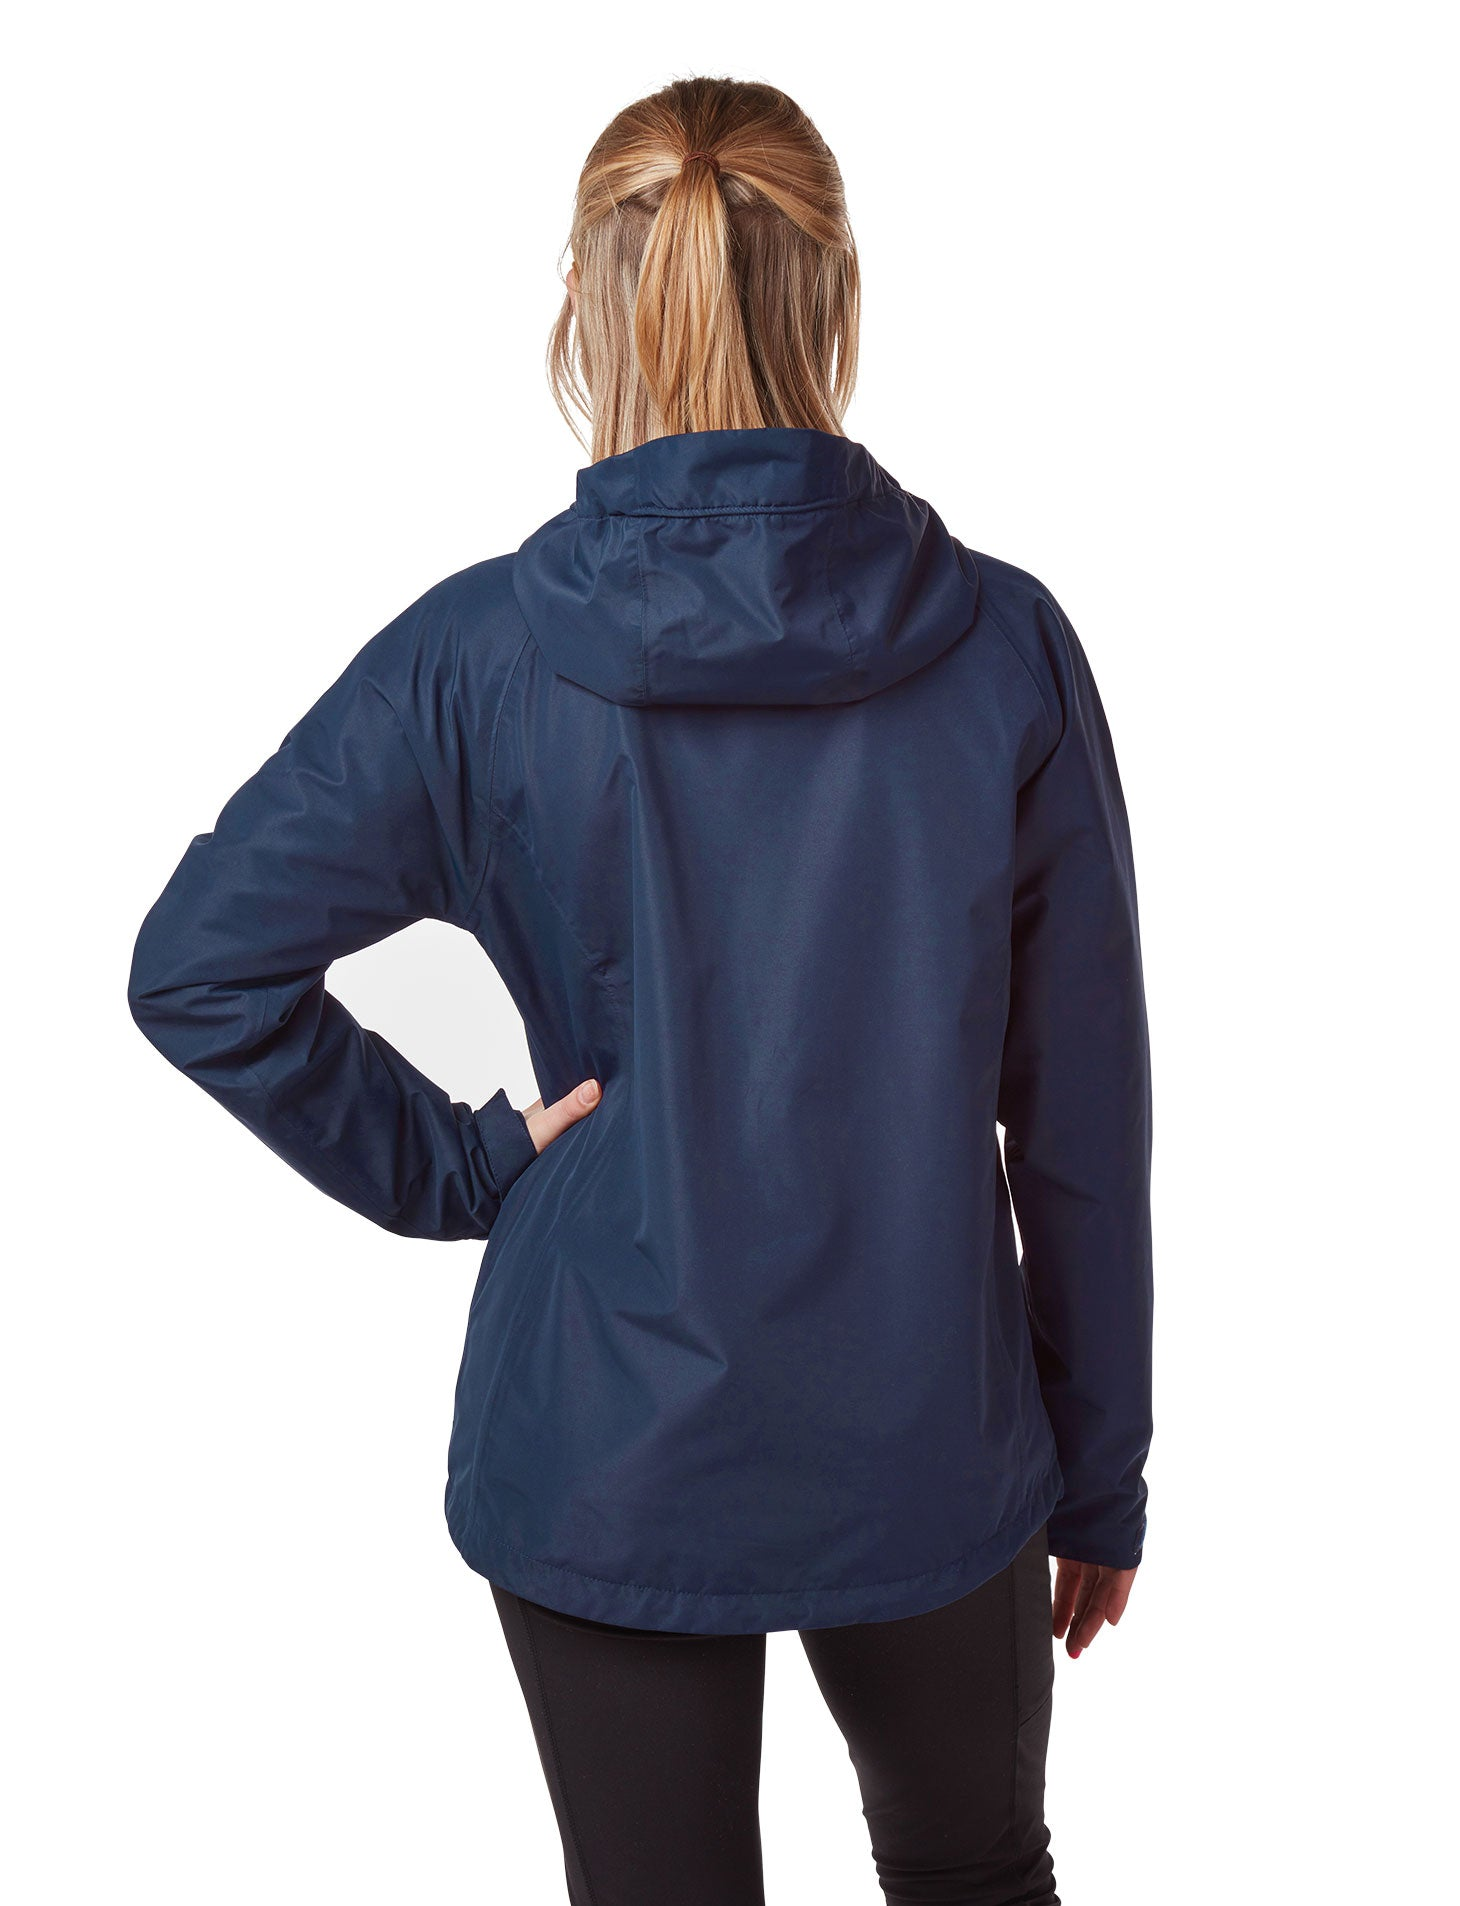 Back View Orion Ladies Jacket by Craghoppers